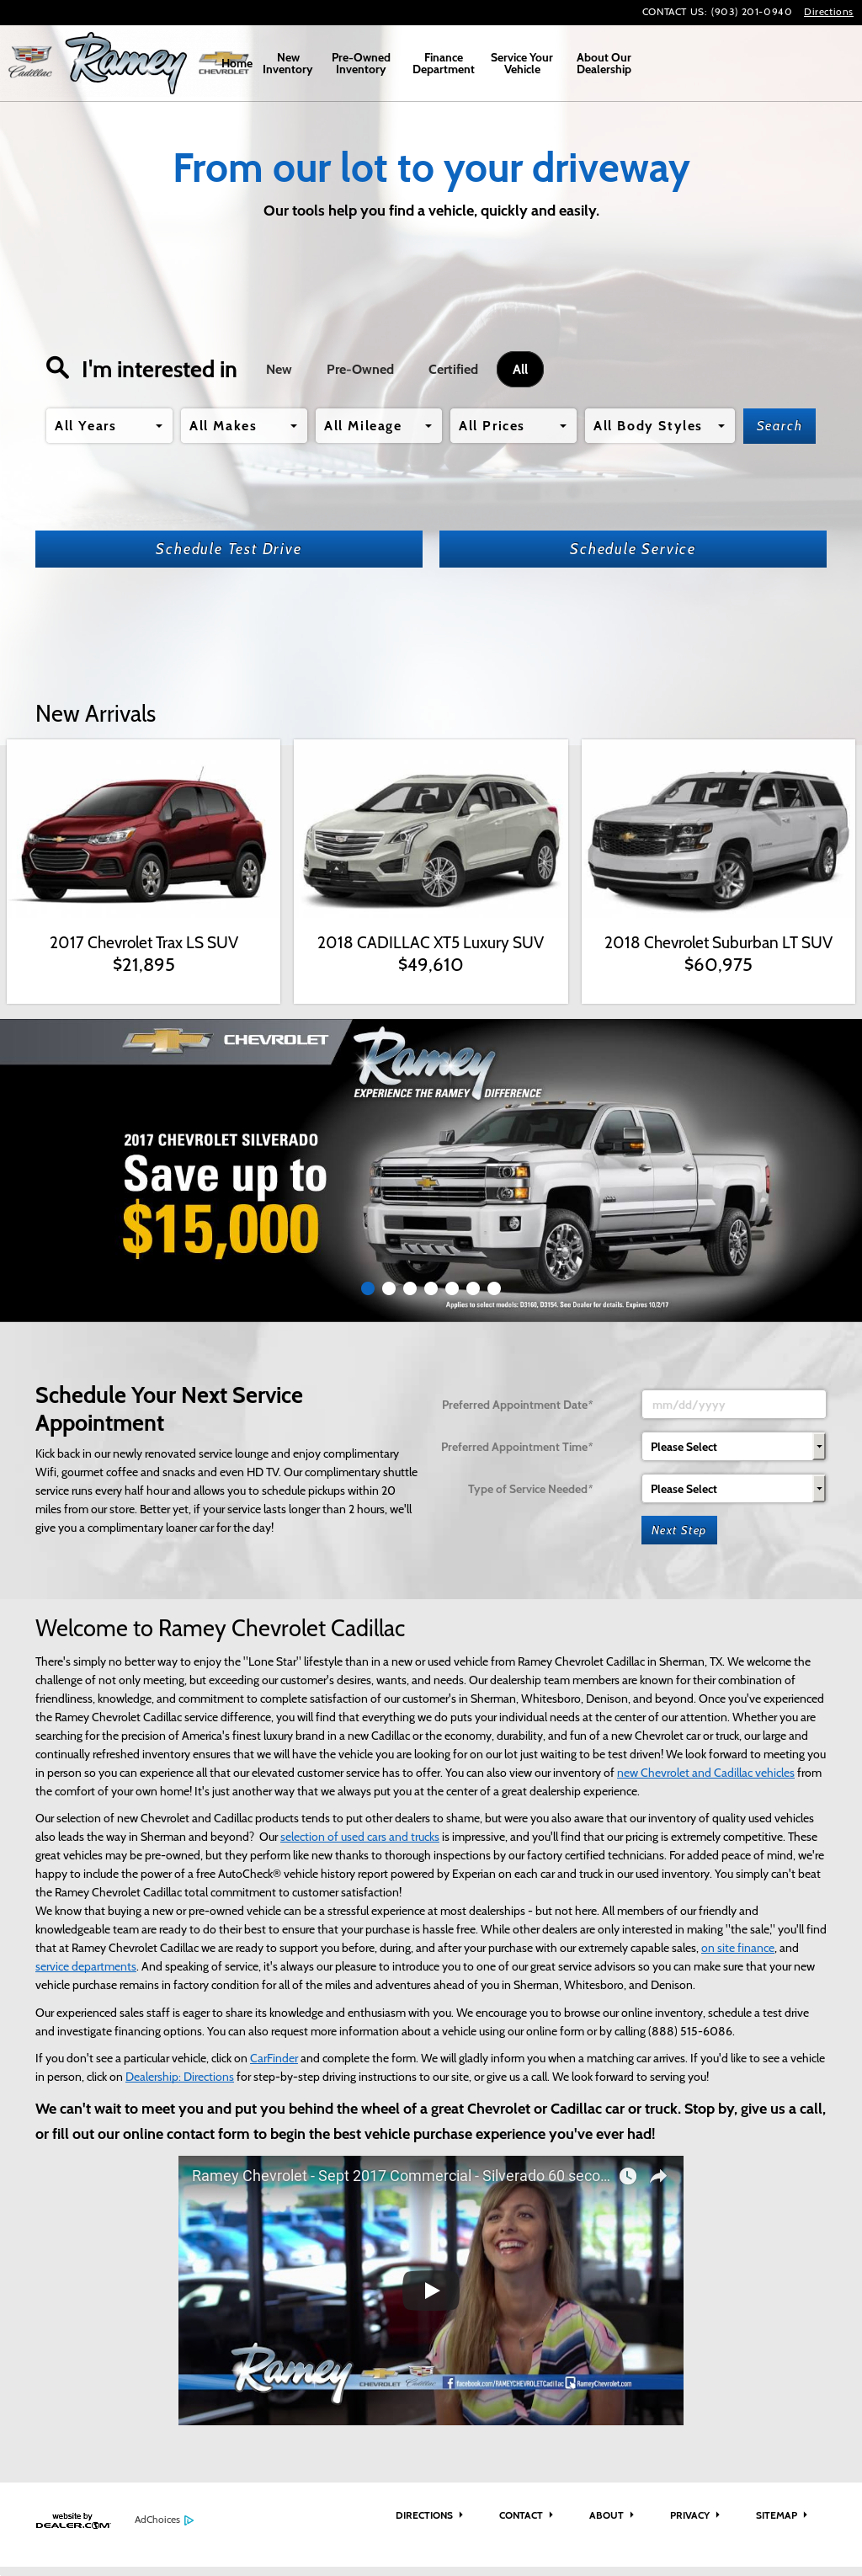 Ramey Chevrolet Cadillacu0027s Website Screenshot On Sep 2017